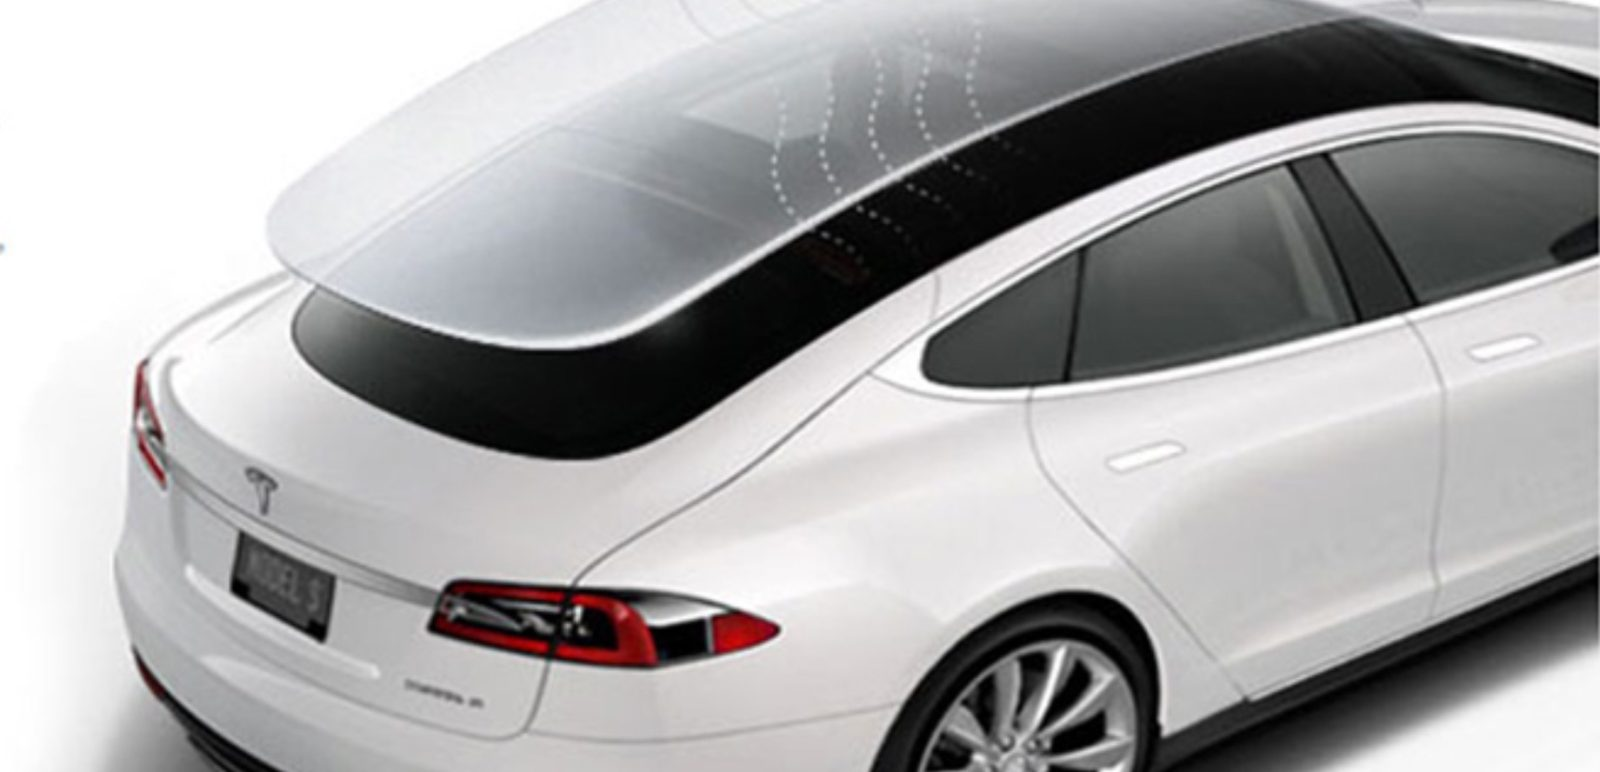 Tesla has new glass technology for noise reduction, temperature control, and more